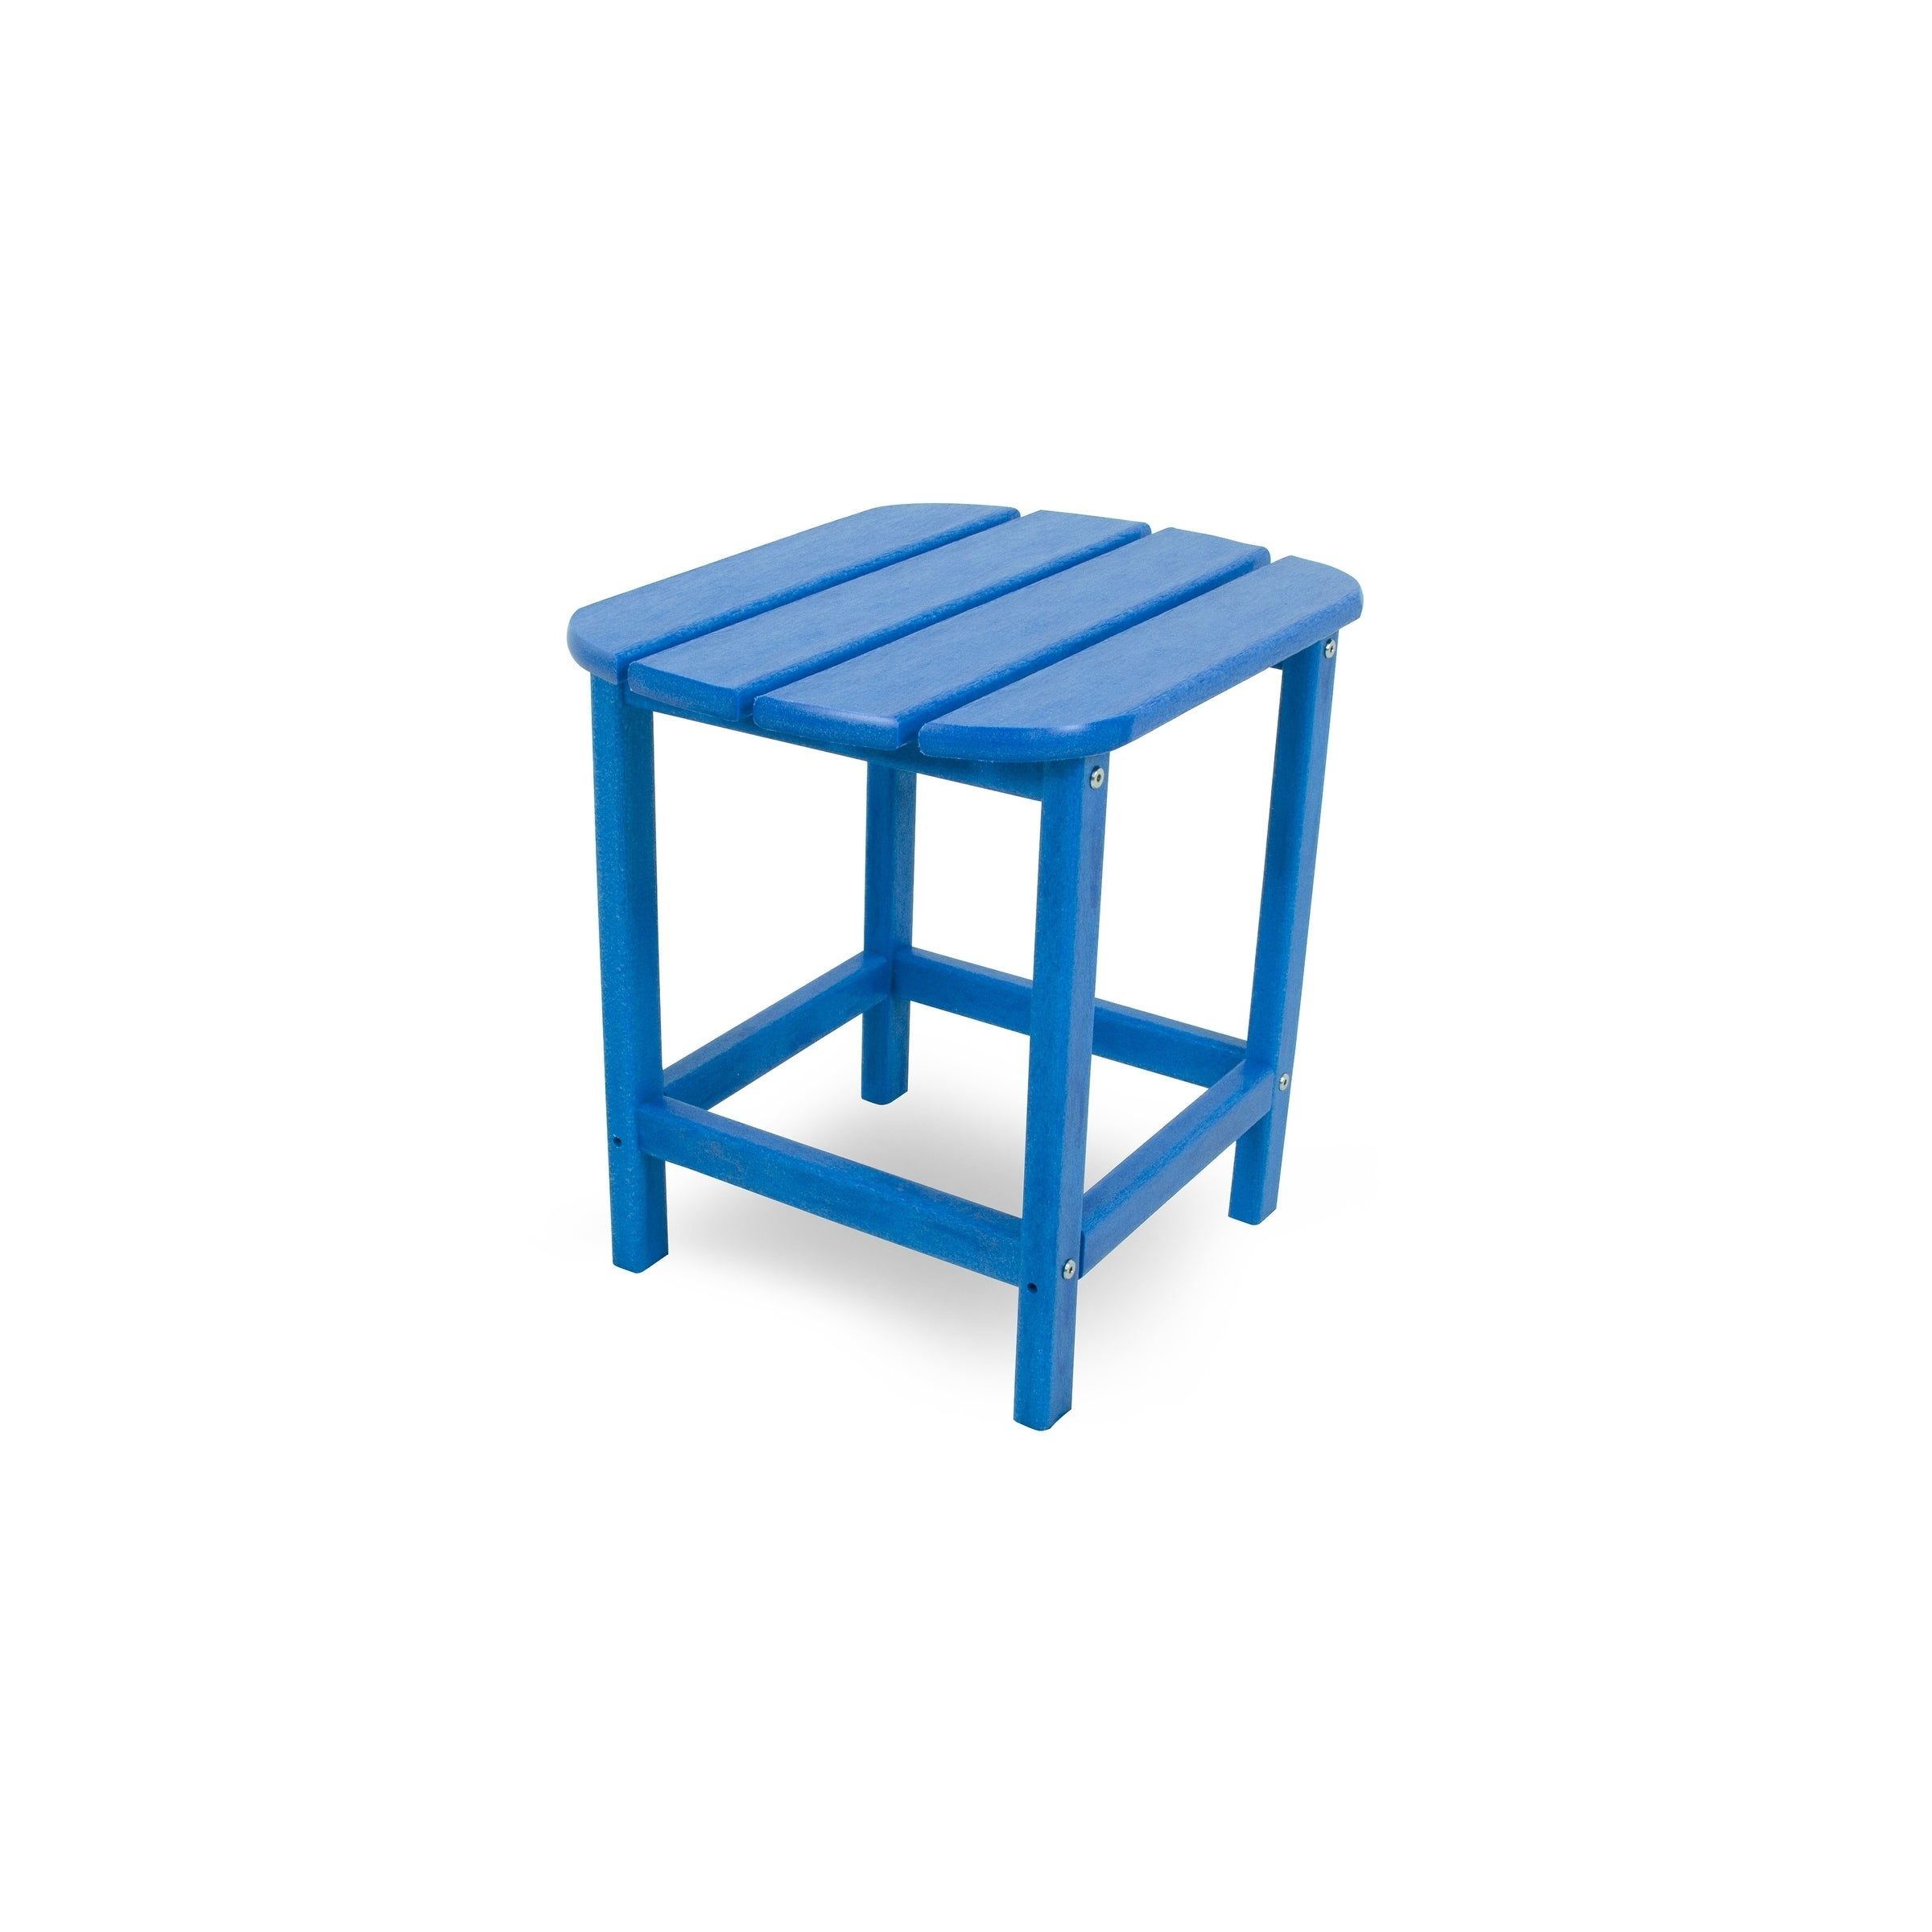 Astonishing Buy Outdoor Coffee Side Tables Online At Overstock Our Alphanode Cool Chair Designs And Ideas Alphanodeonline